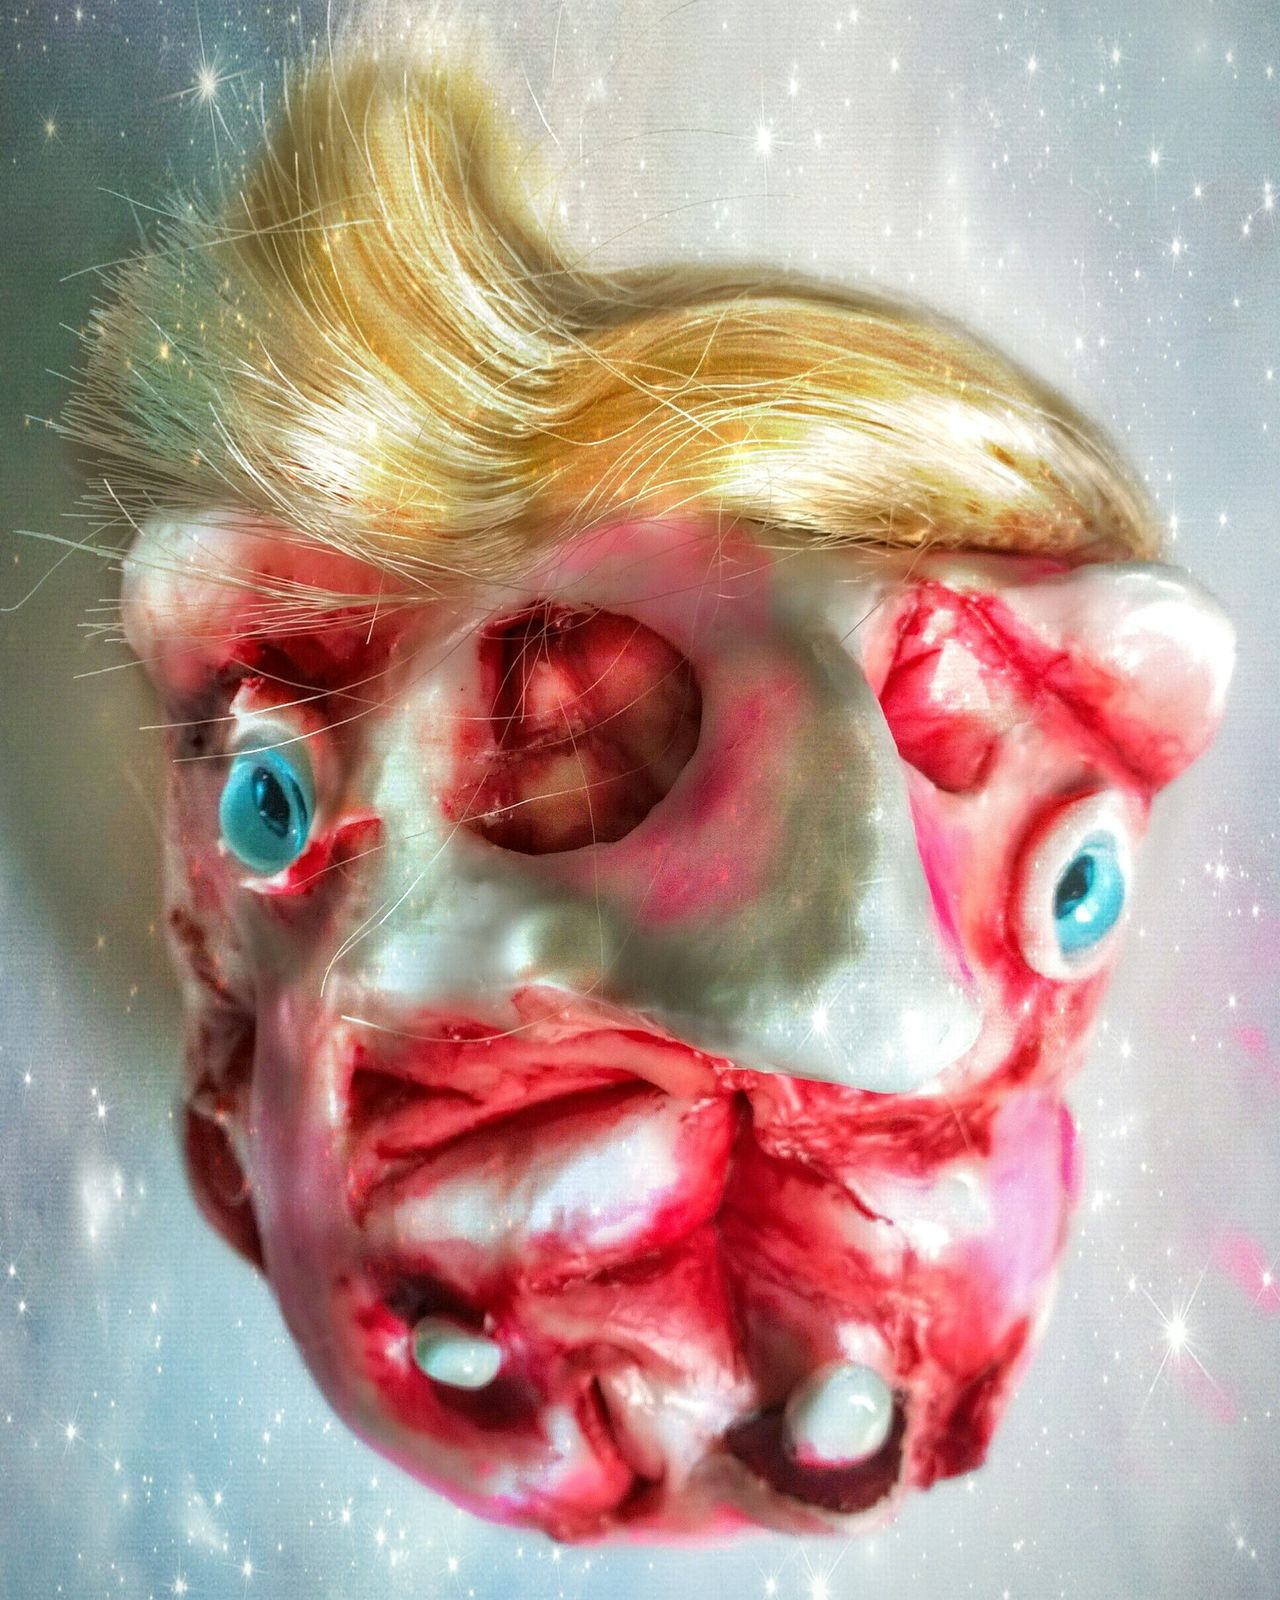 Sculptures Mixed Media Art Trump2016 Trump Painting Sculpture MixedmediaScary Dolls Human Face Paintings Getting In Touch Handmade Portrait Extreme Close-up Scary Face Horrorclown Dolls Head Scary Stuff  Man Made Object